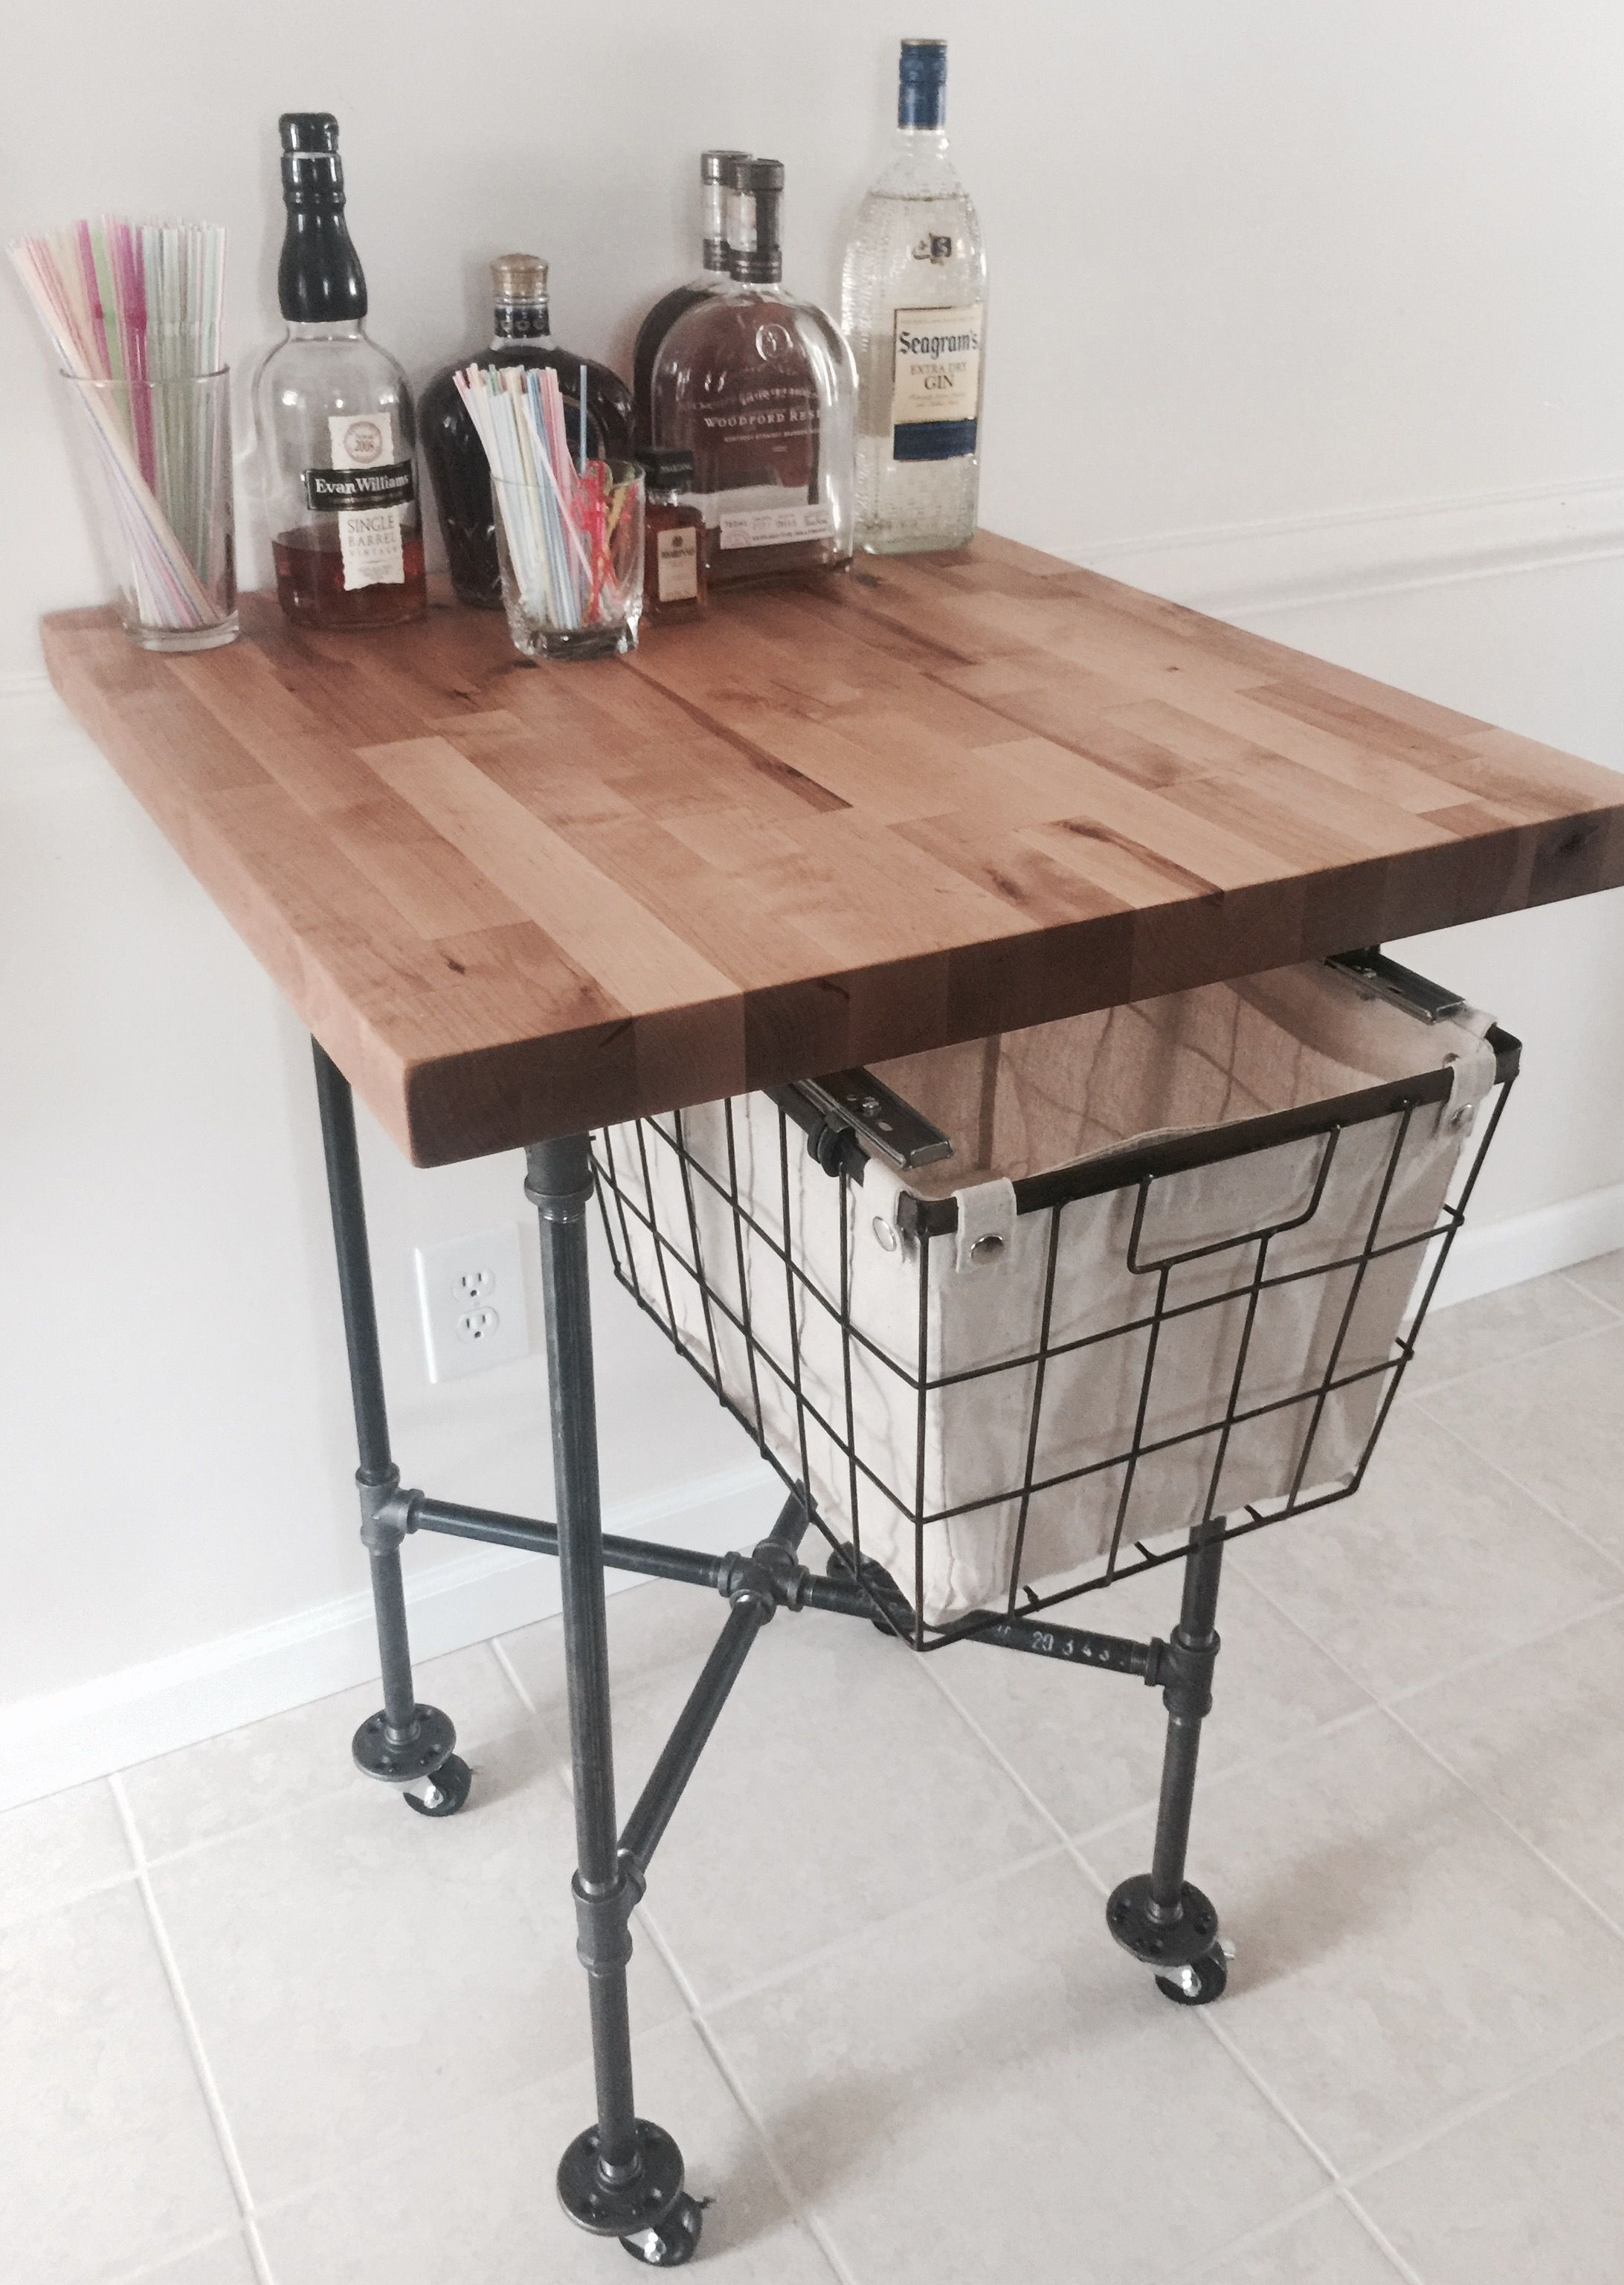 Butcher Block Island W Slide Out Basket On A Steel Pipe